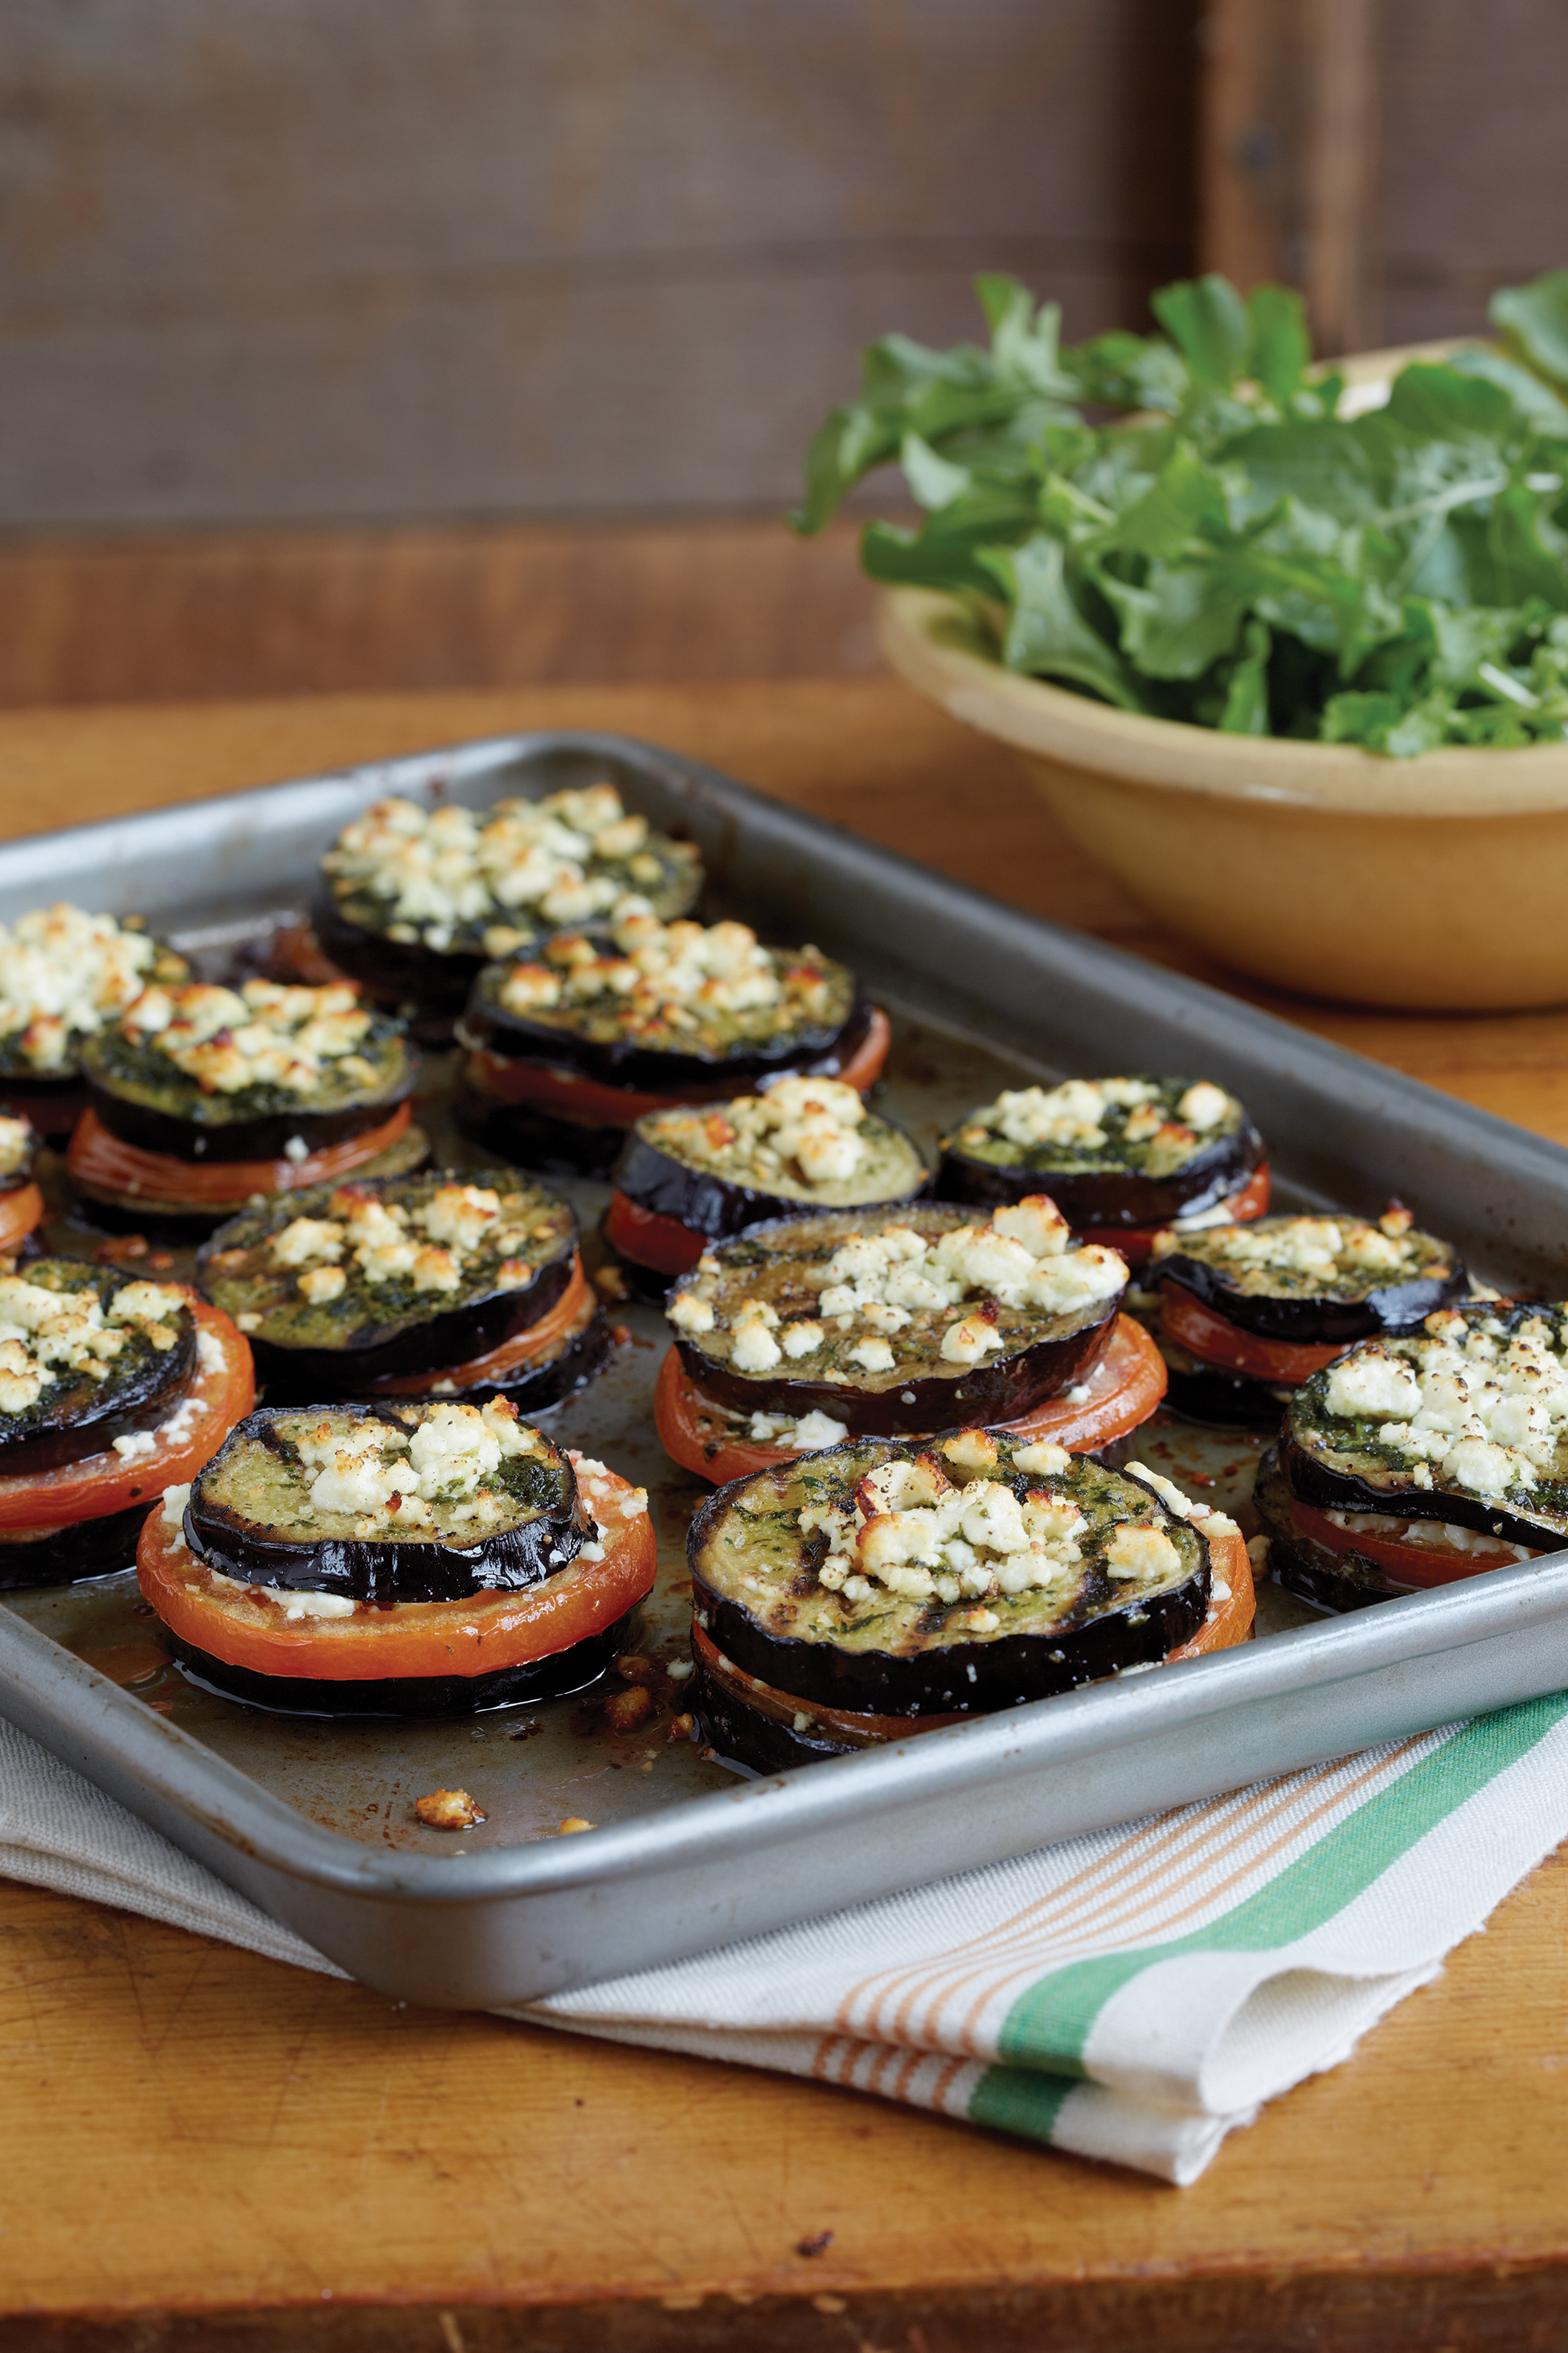 Eggplant recipes | Anne Byrn